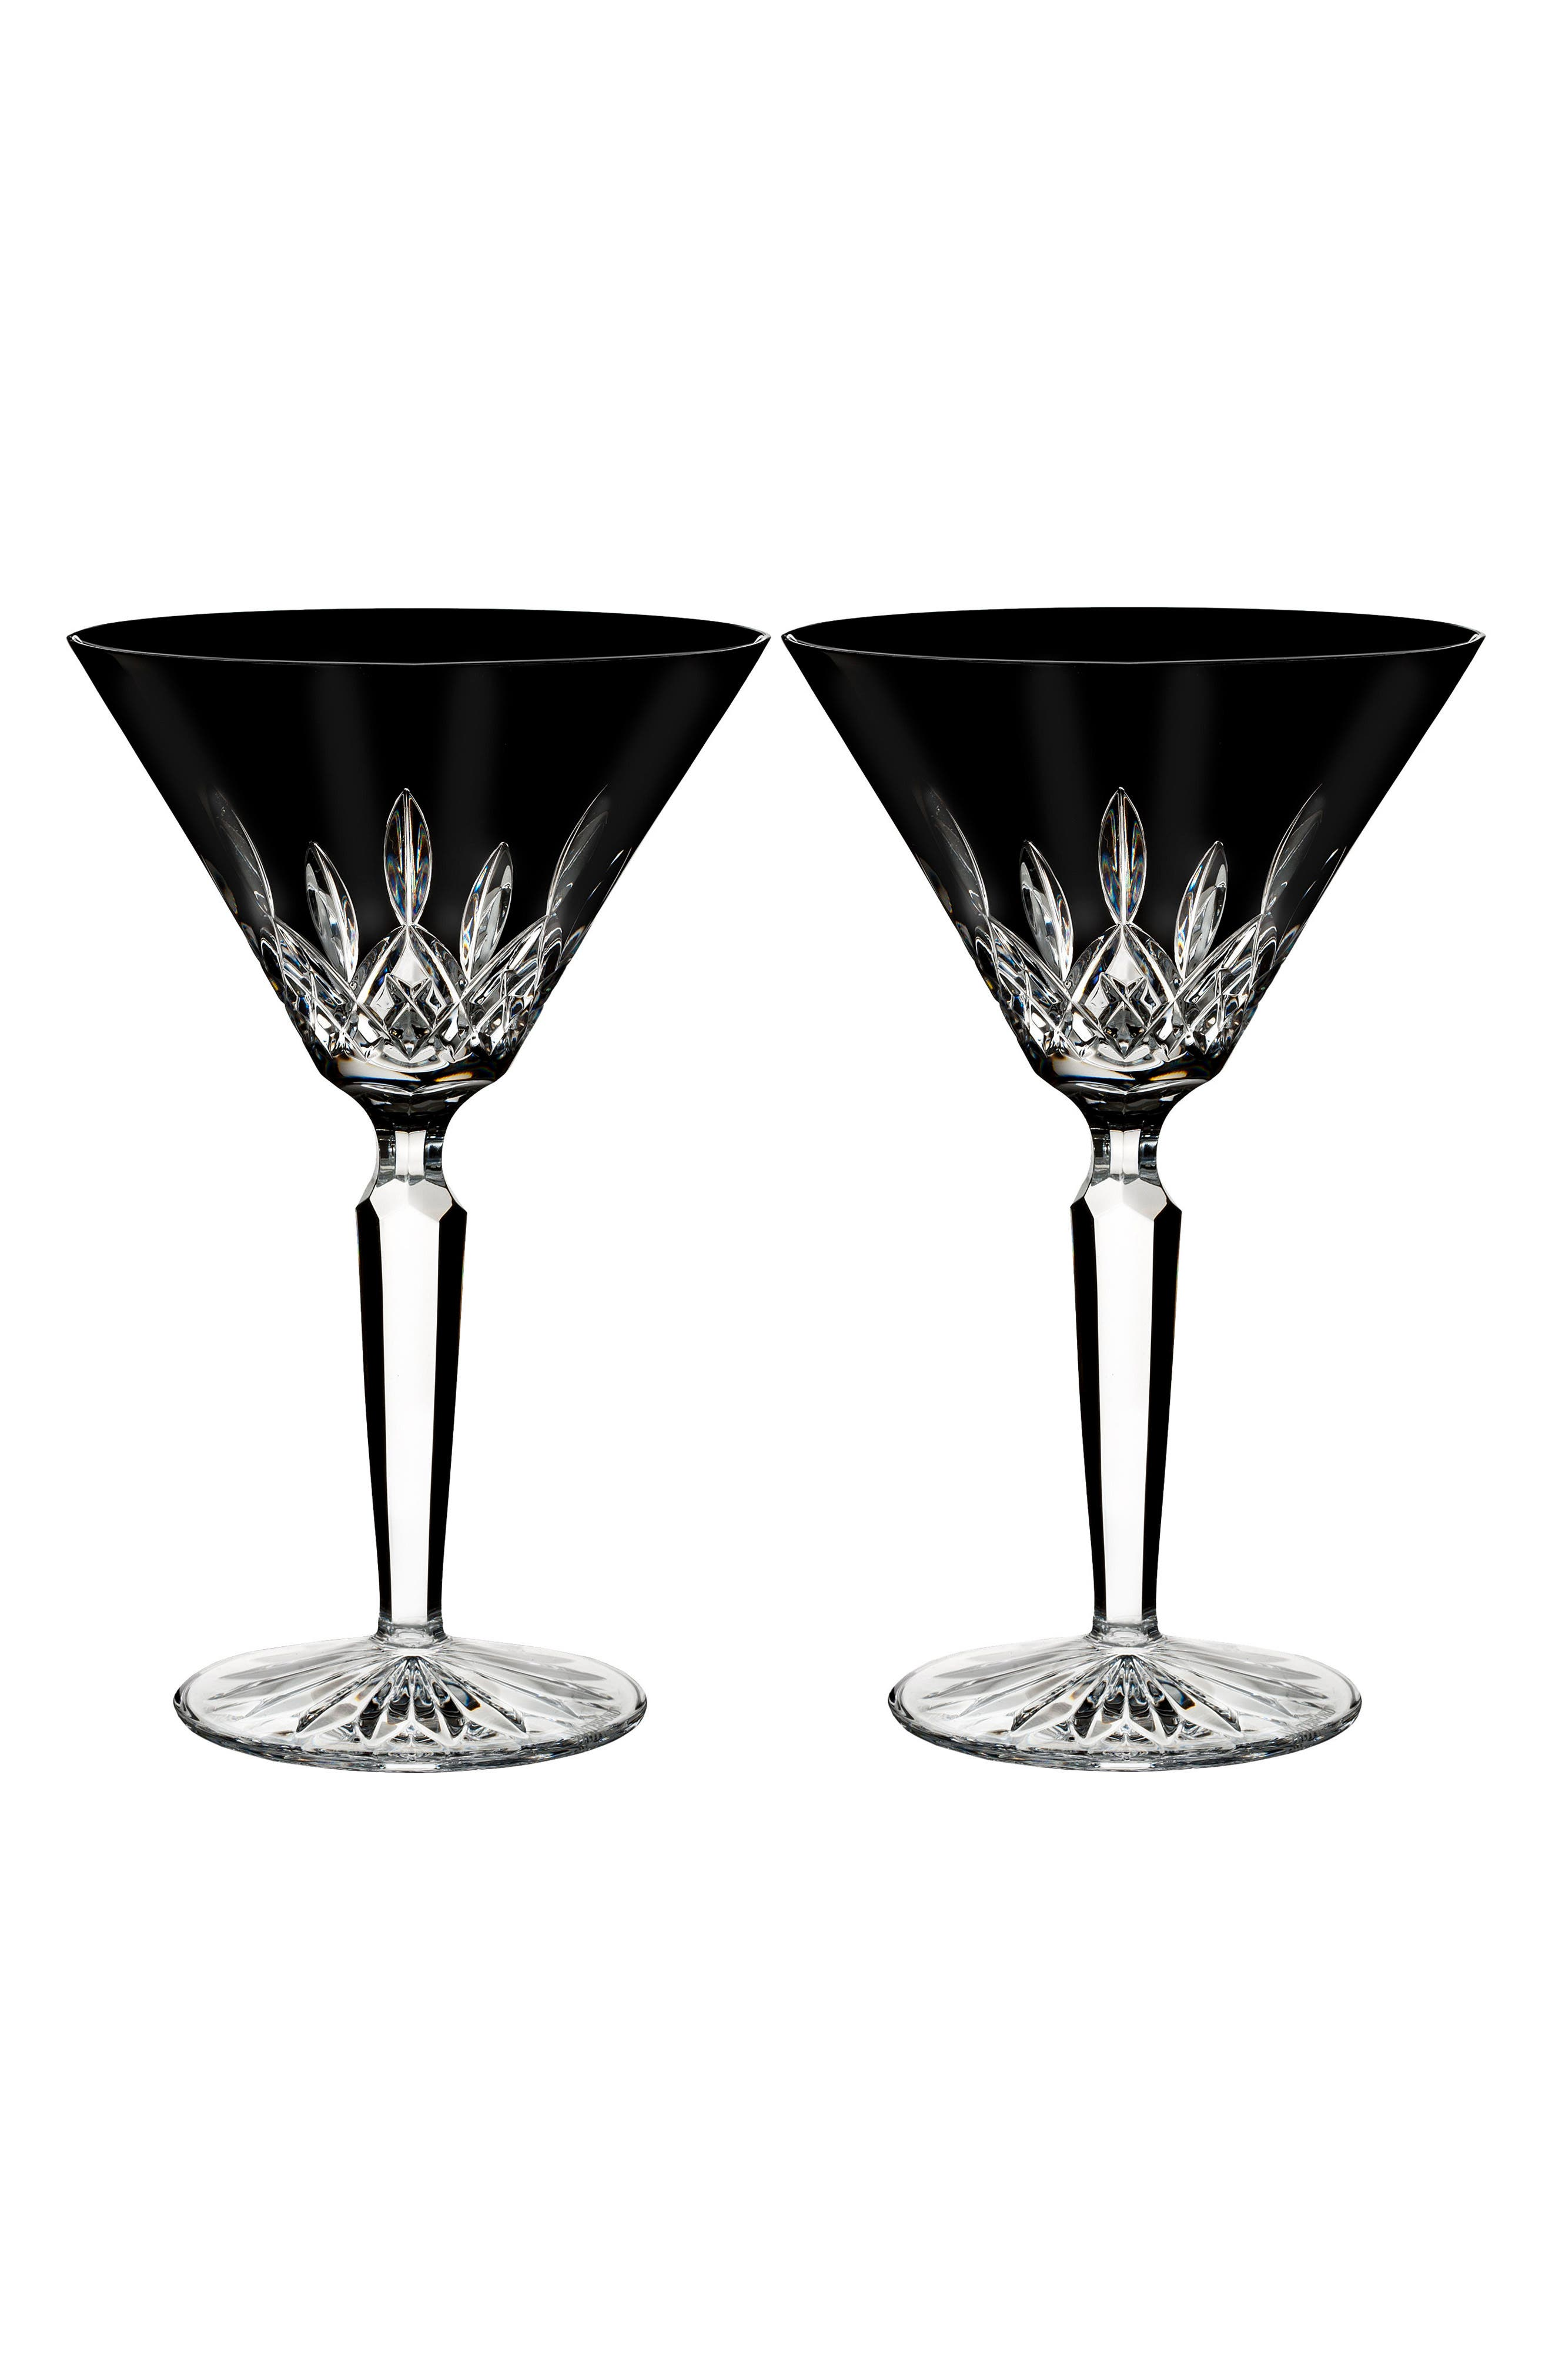 Lismore Diamond Set of 2 Black Lead Crystal Martini Glasses,                             Main thumbnail 1, color,                             Crystal